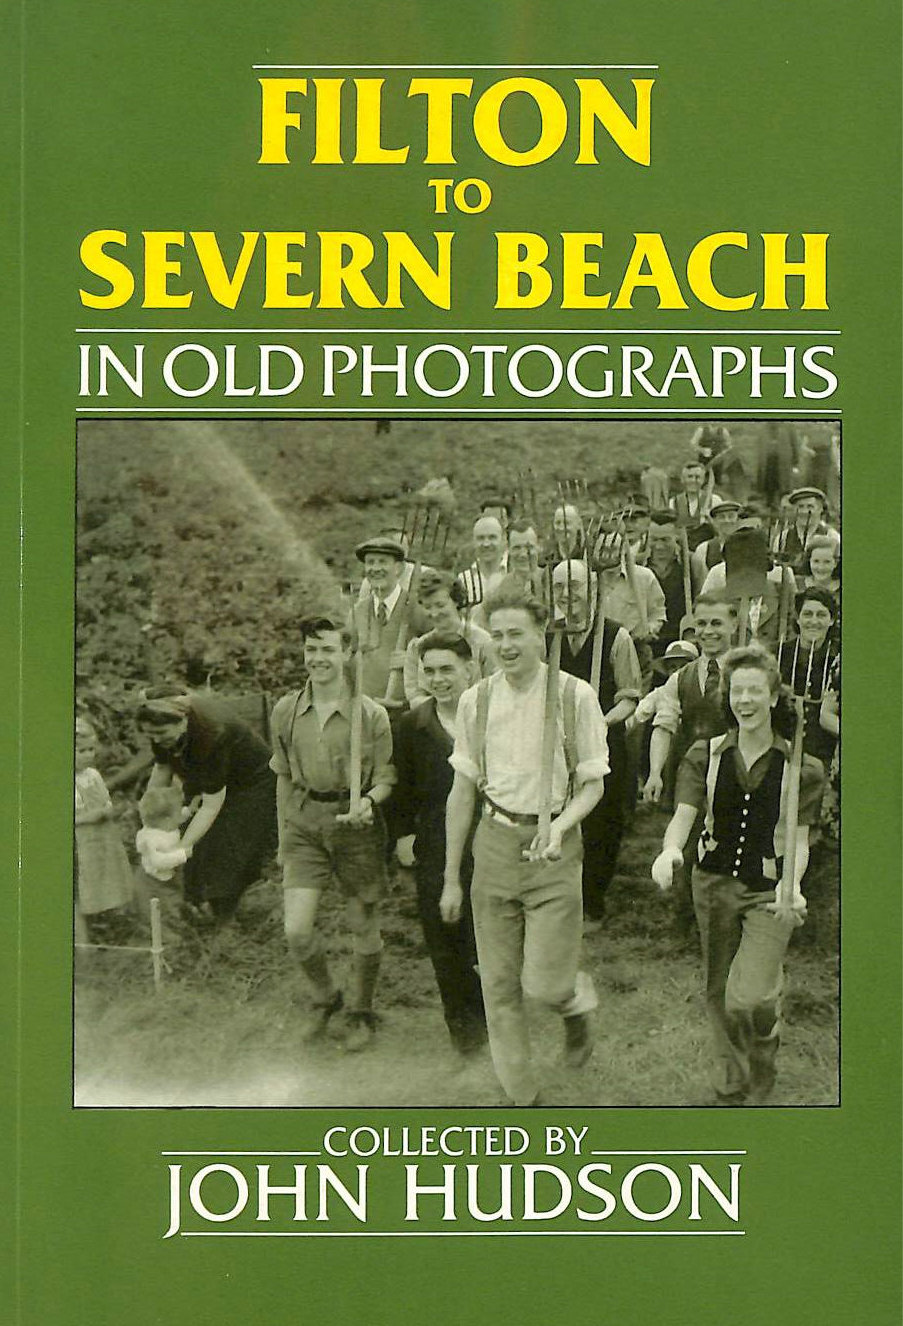 Image for Filton to Severn Beach in Old Photographs